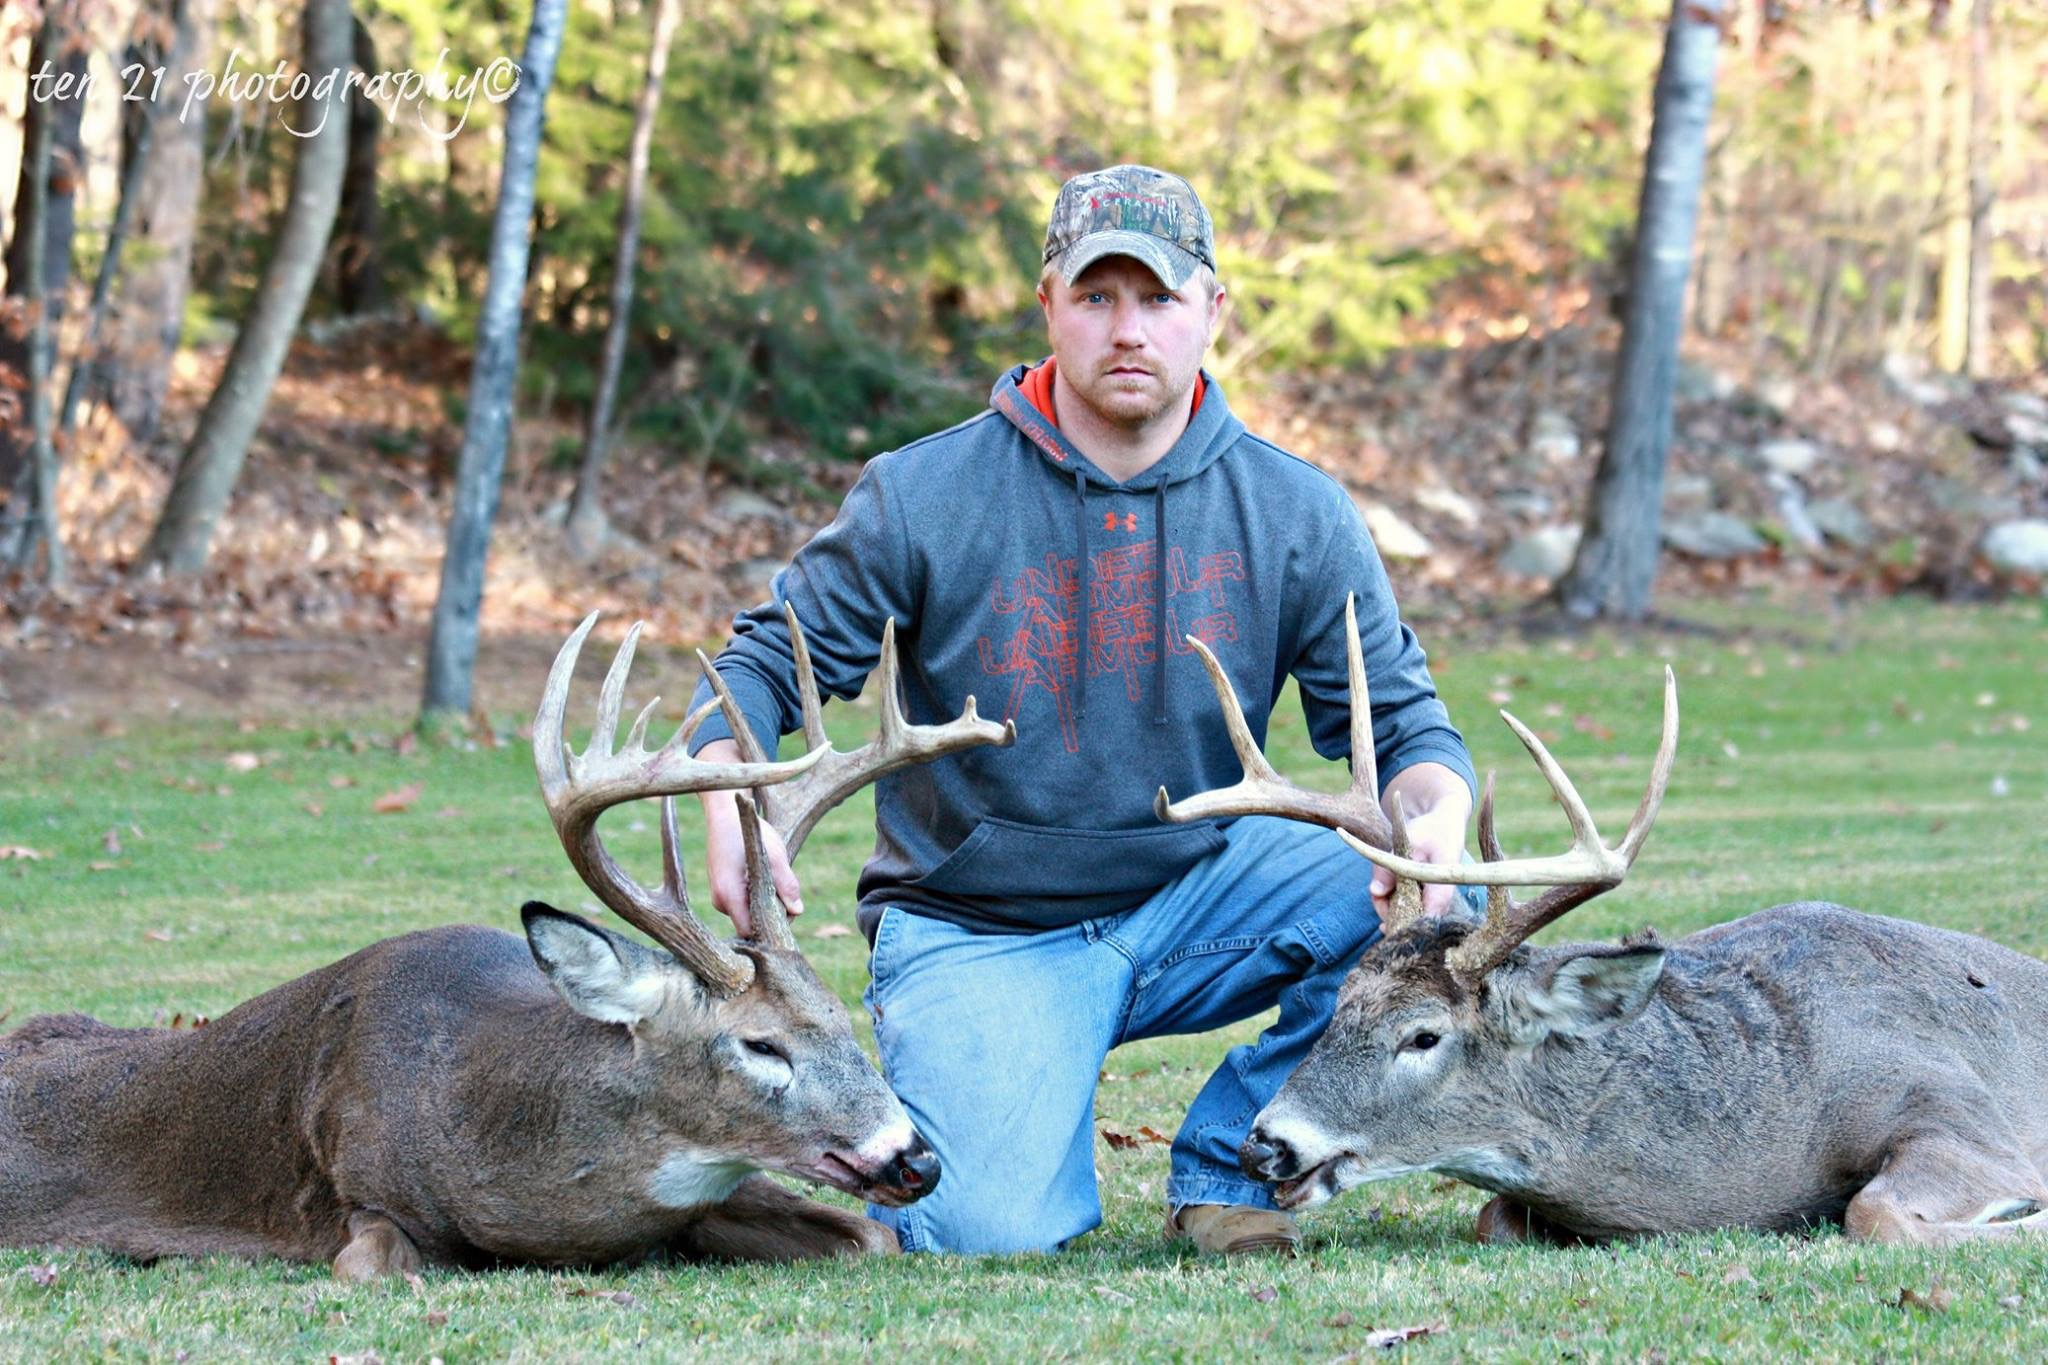 Berkshire outdoorsman hunting and fishing in the for Ma fishing license cost